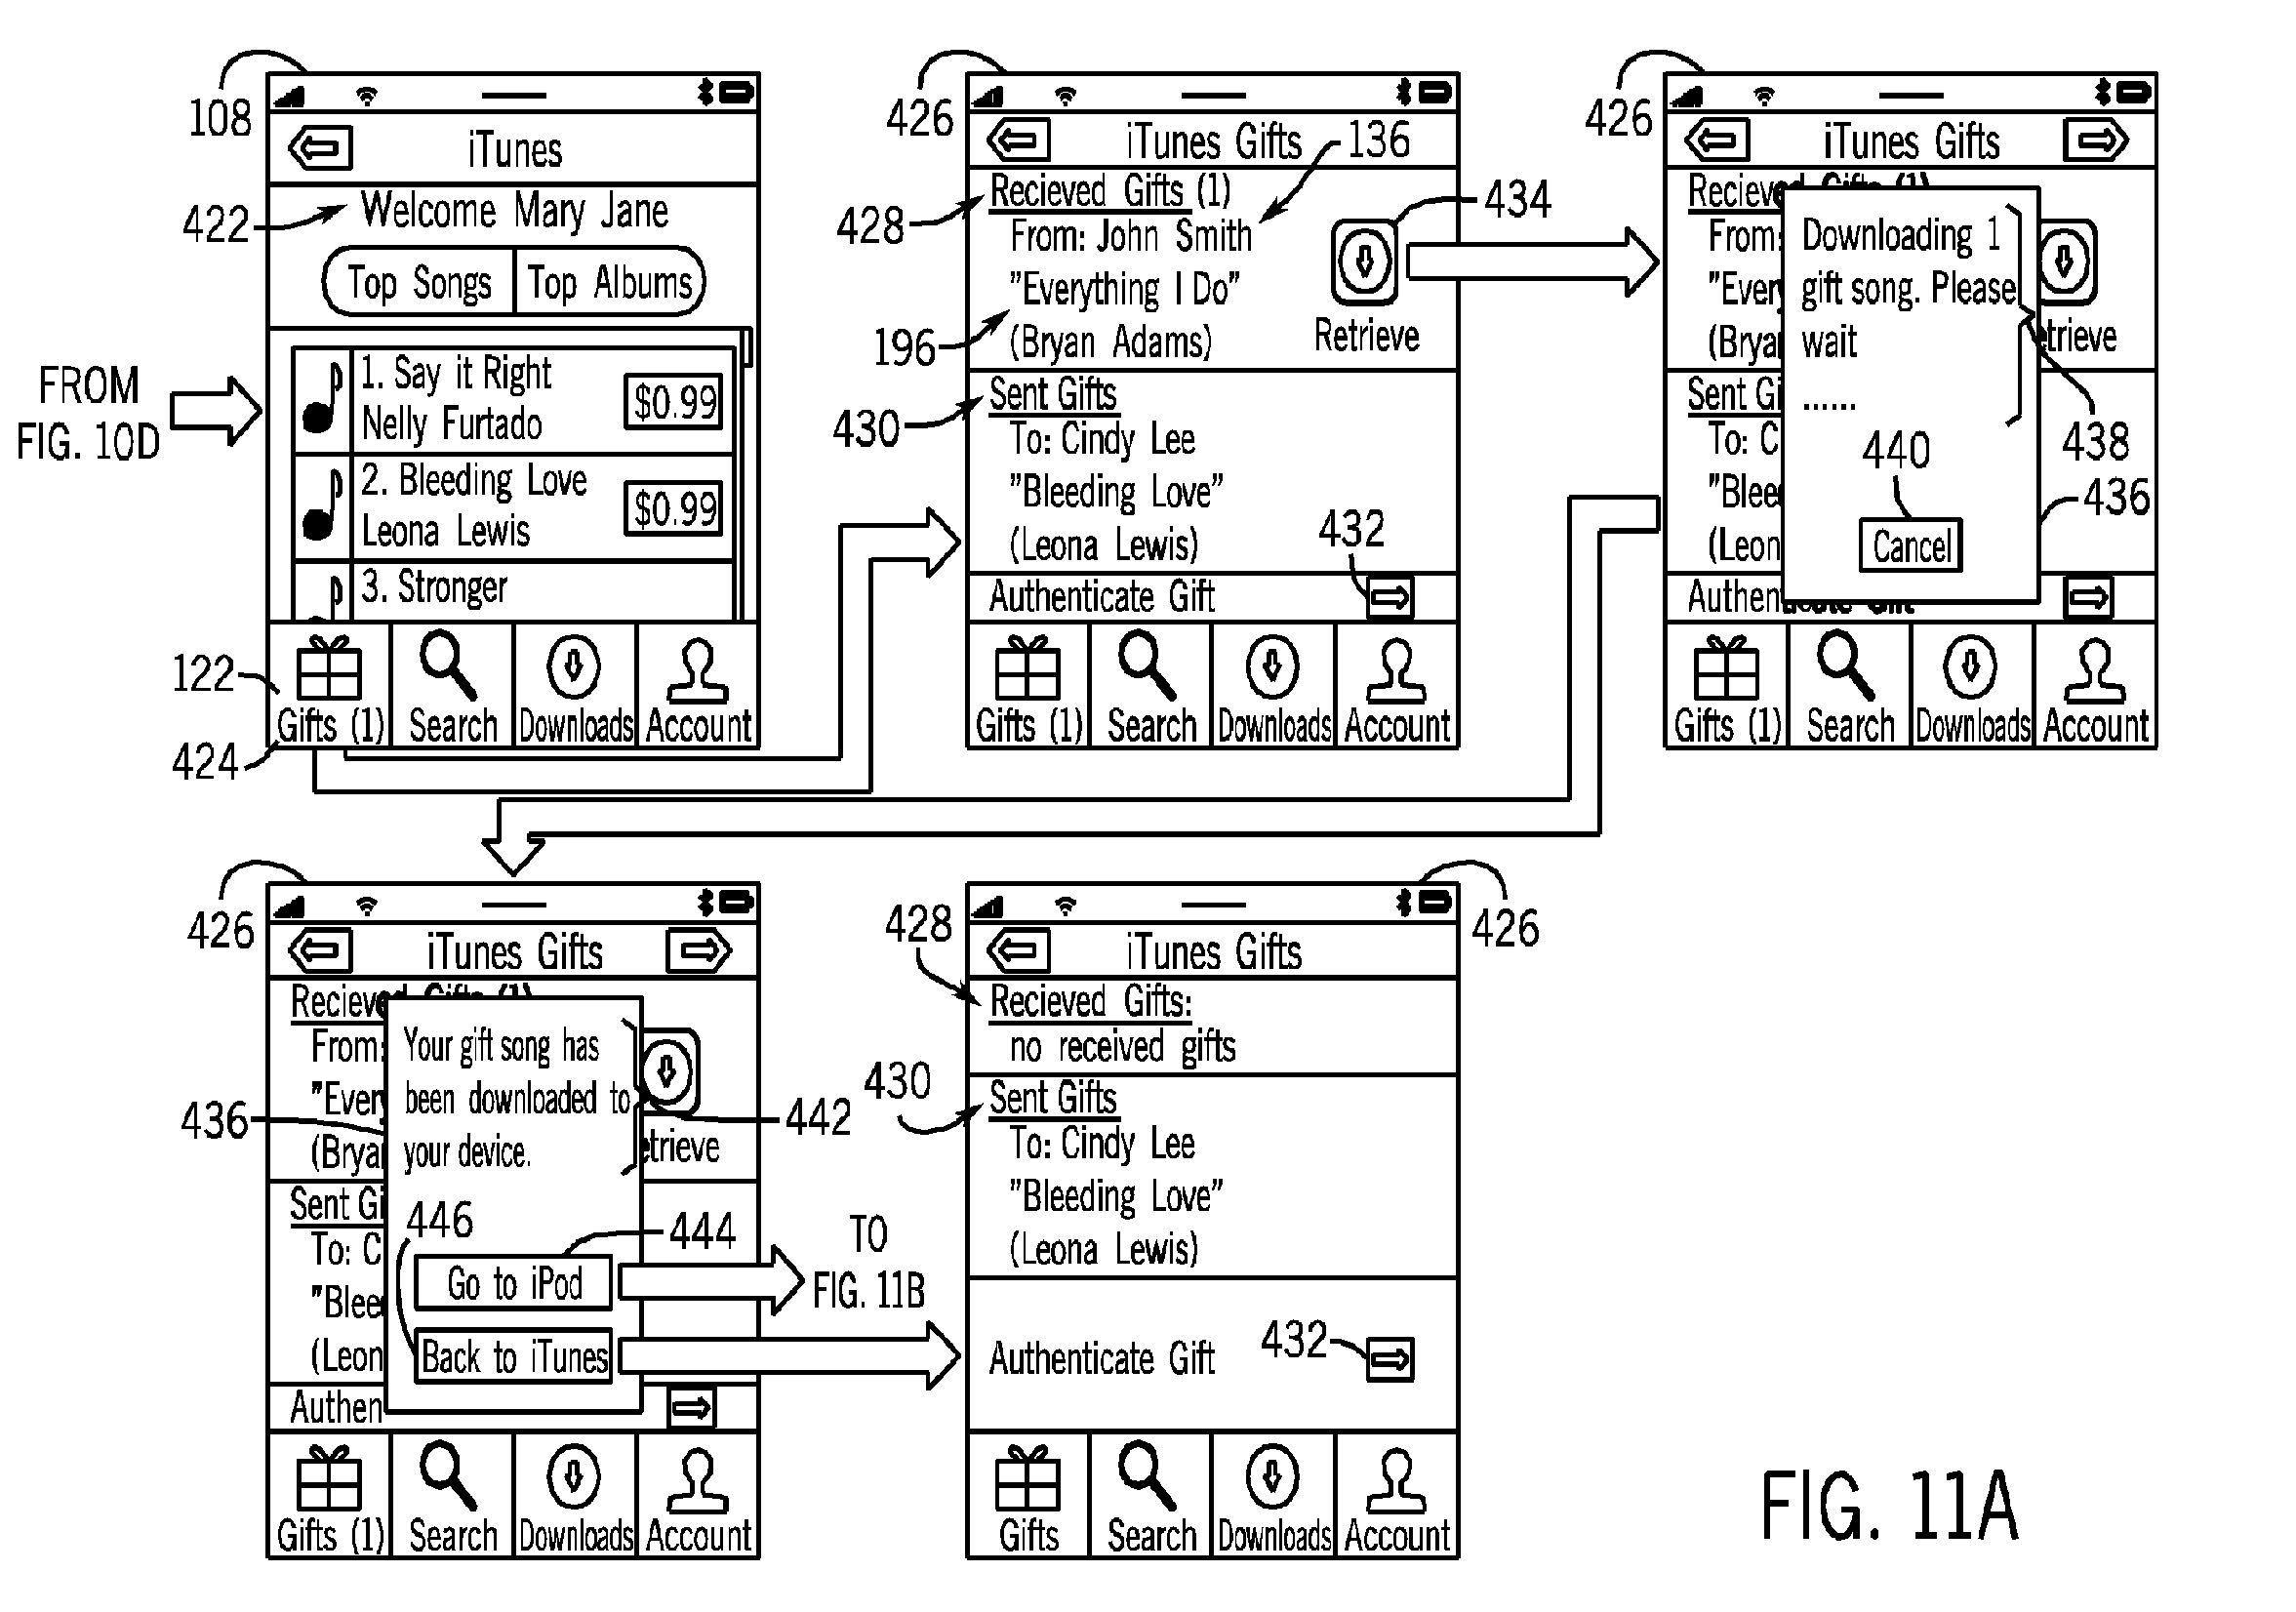 Apple patent (device-to-defice gifting, drawing 004)